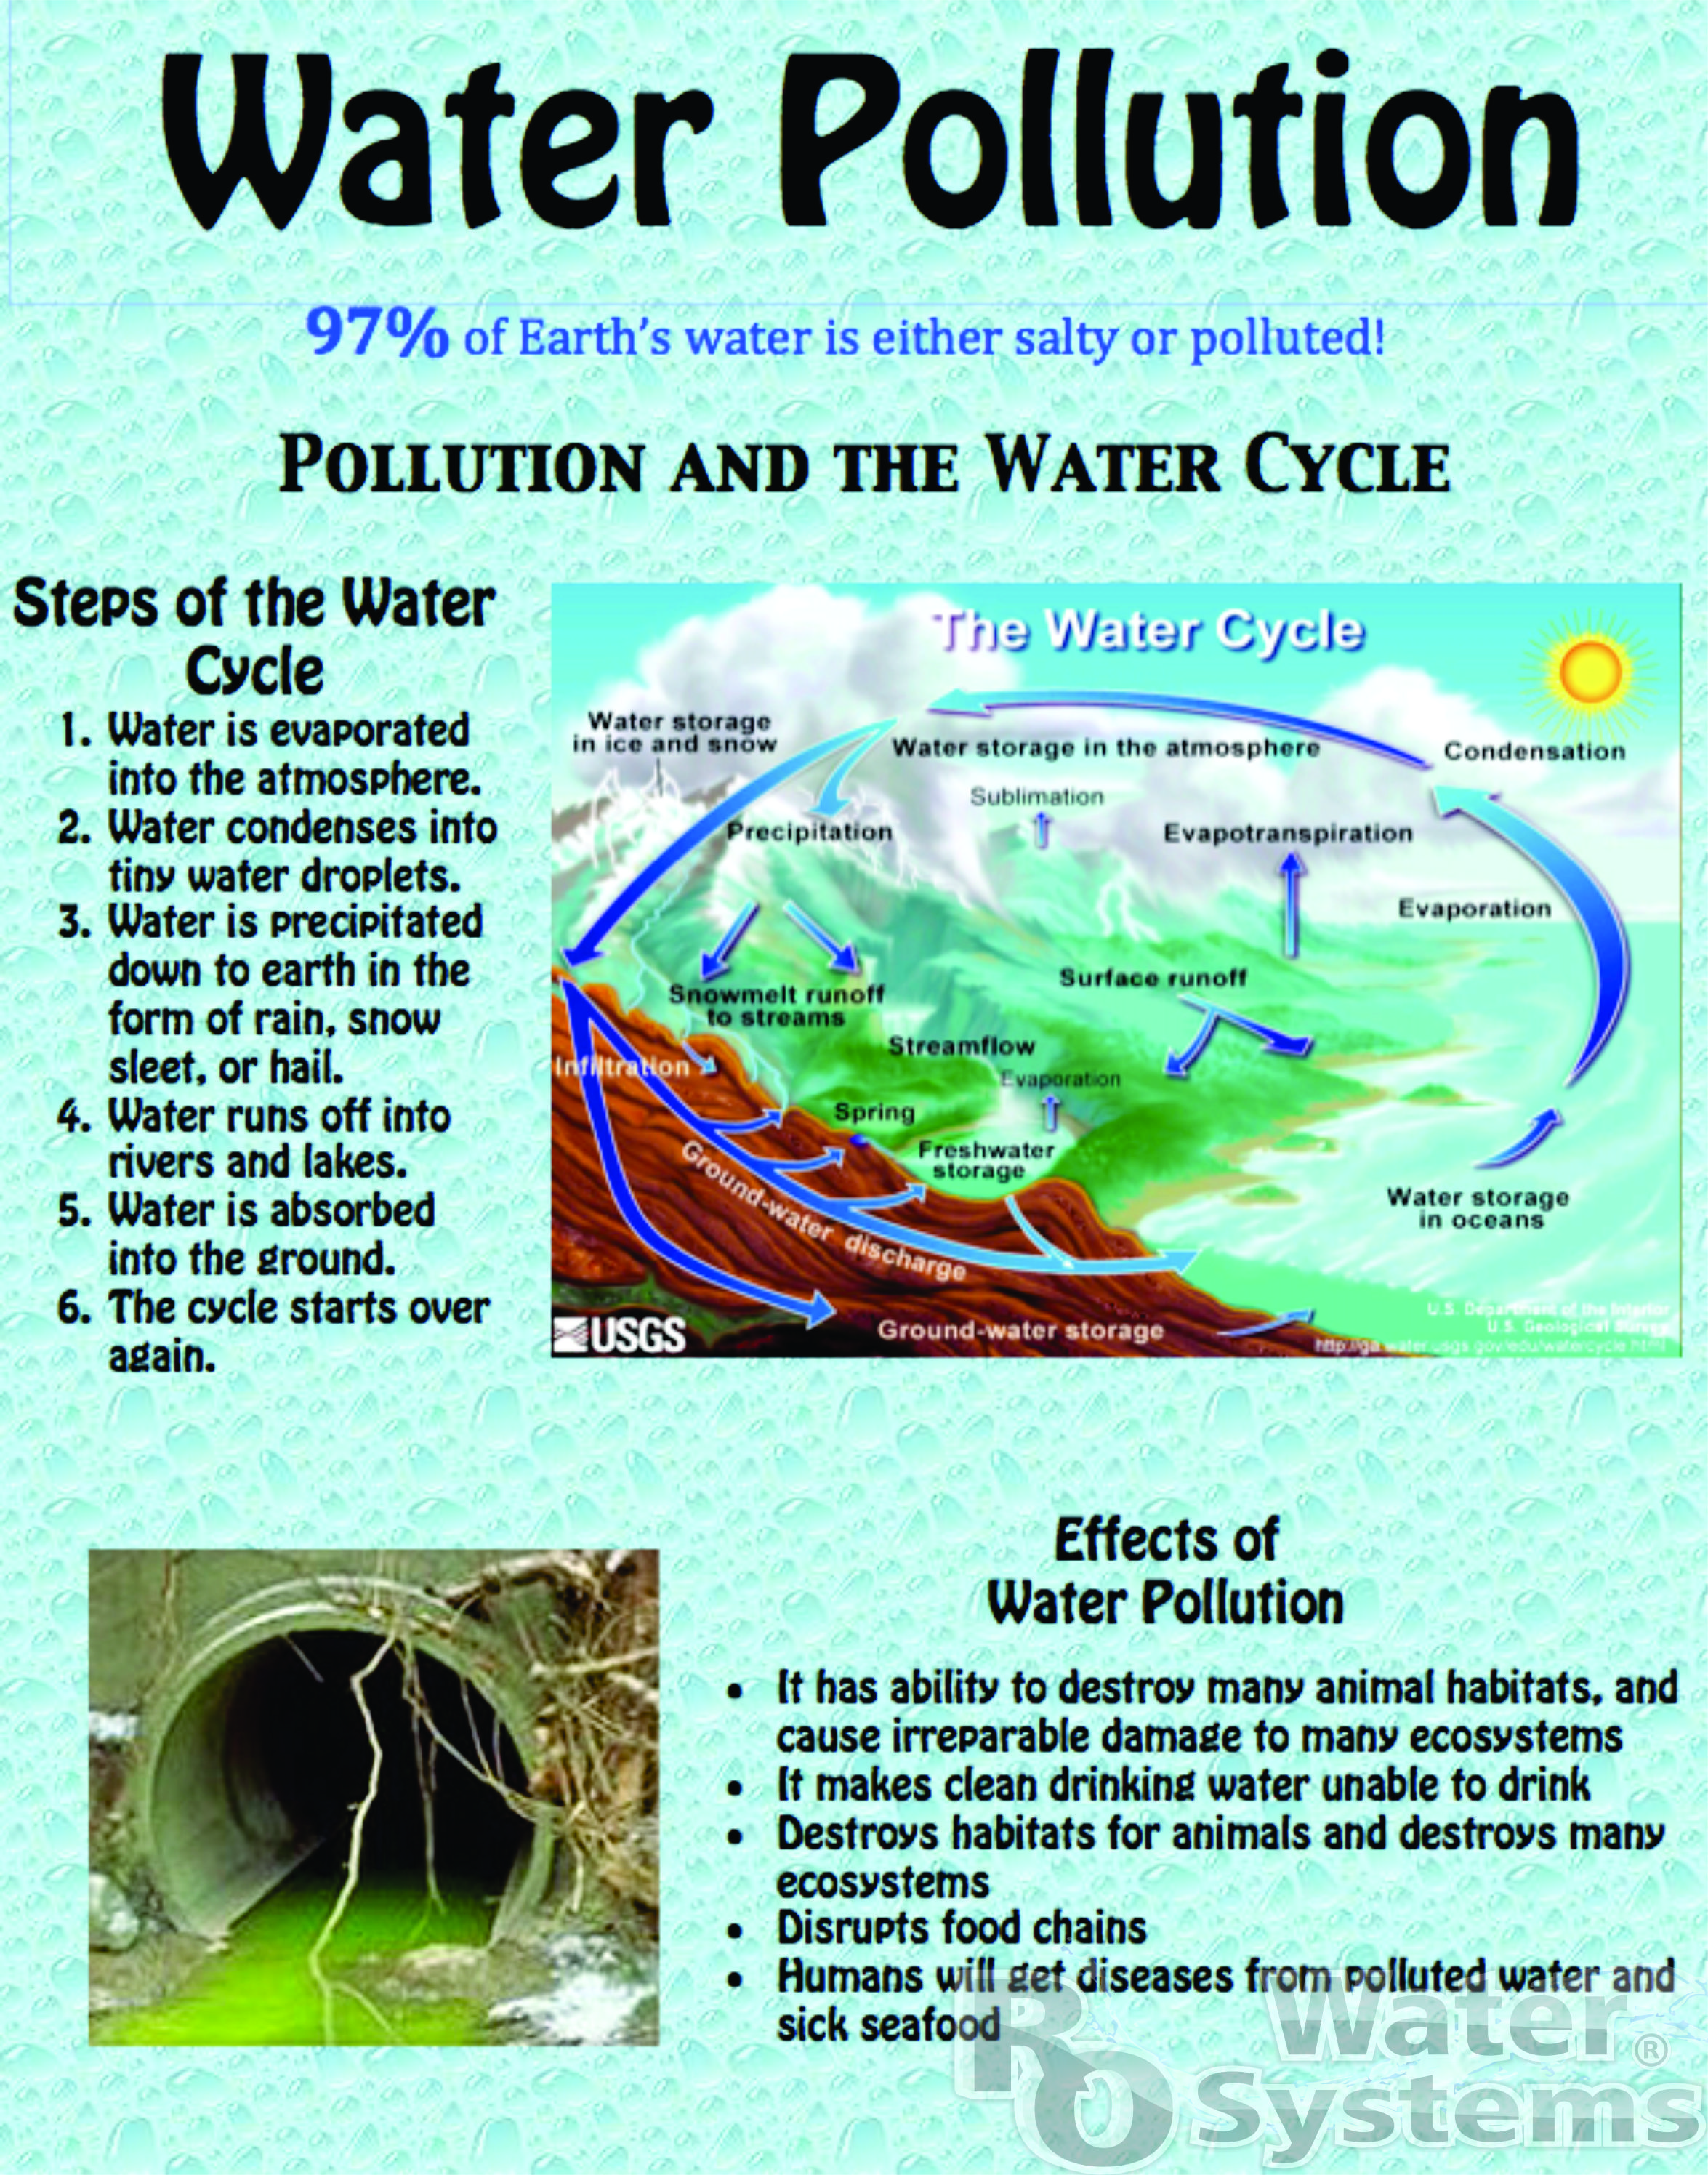 drinking water pollution and the earths rising Less than 1% of all the water on earth is fresh water that we can actually use we use this small amount of water for drinking, transportation, heating and cooling, industry, and many other purposes we use this small amount of water for drinking, transportation, heating and cooling, industry, and many other purposes.